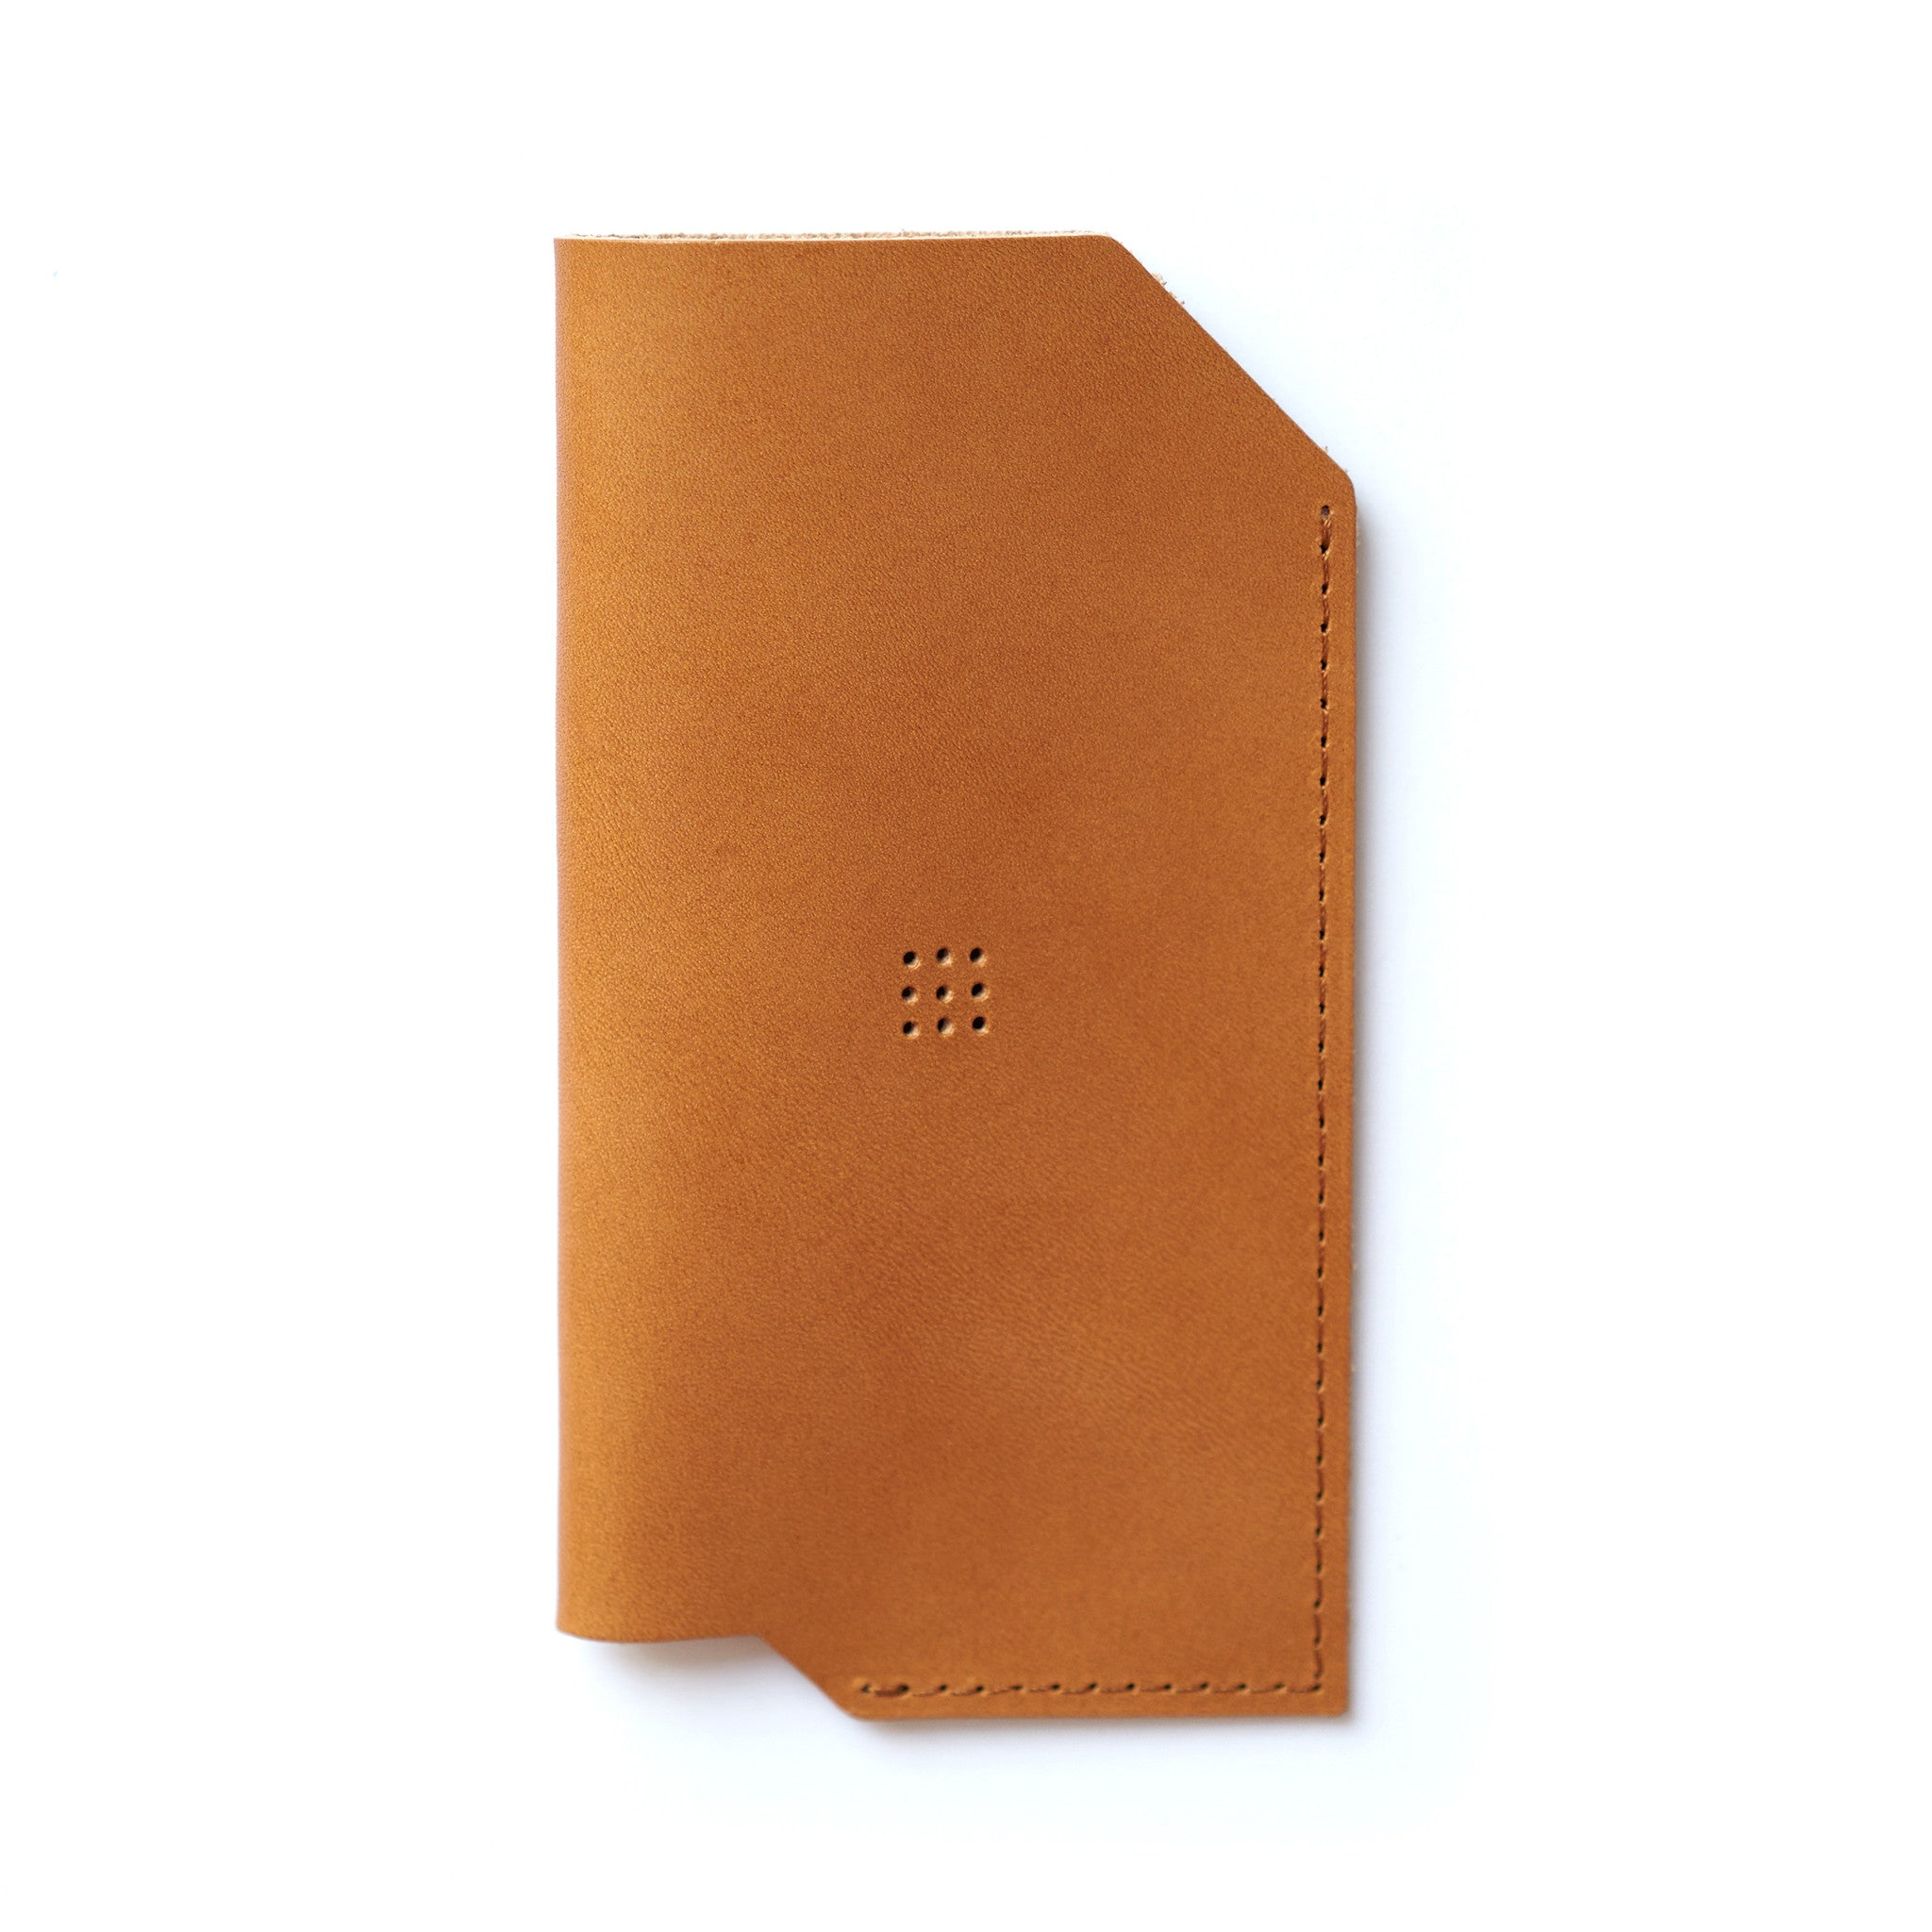 '502' iPhone Vegetable Leather Sleeve Camel